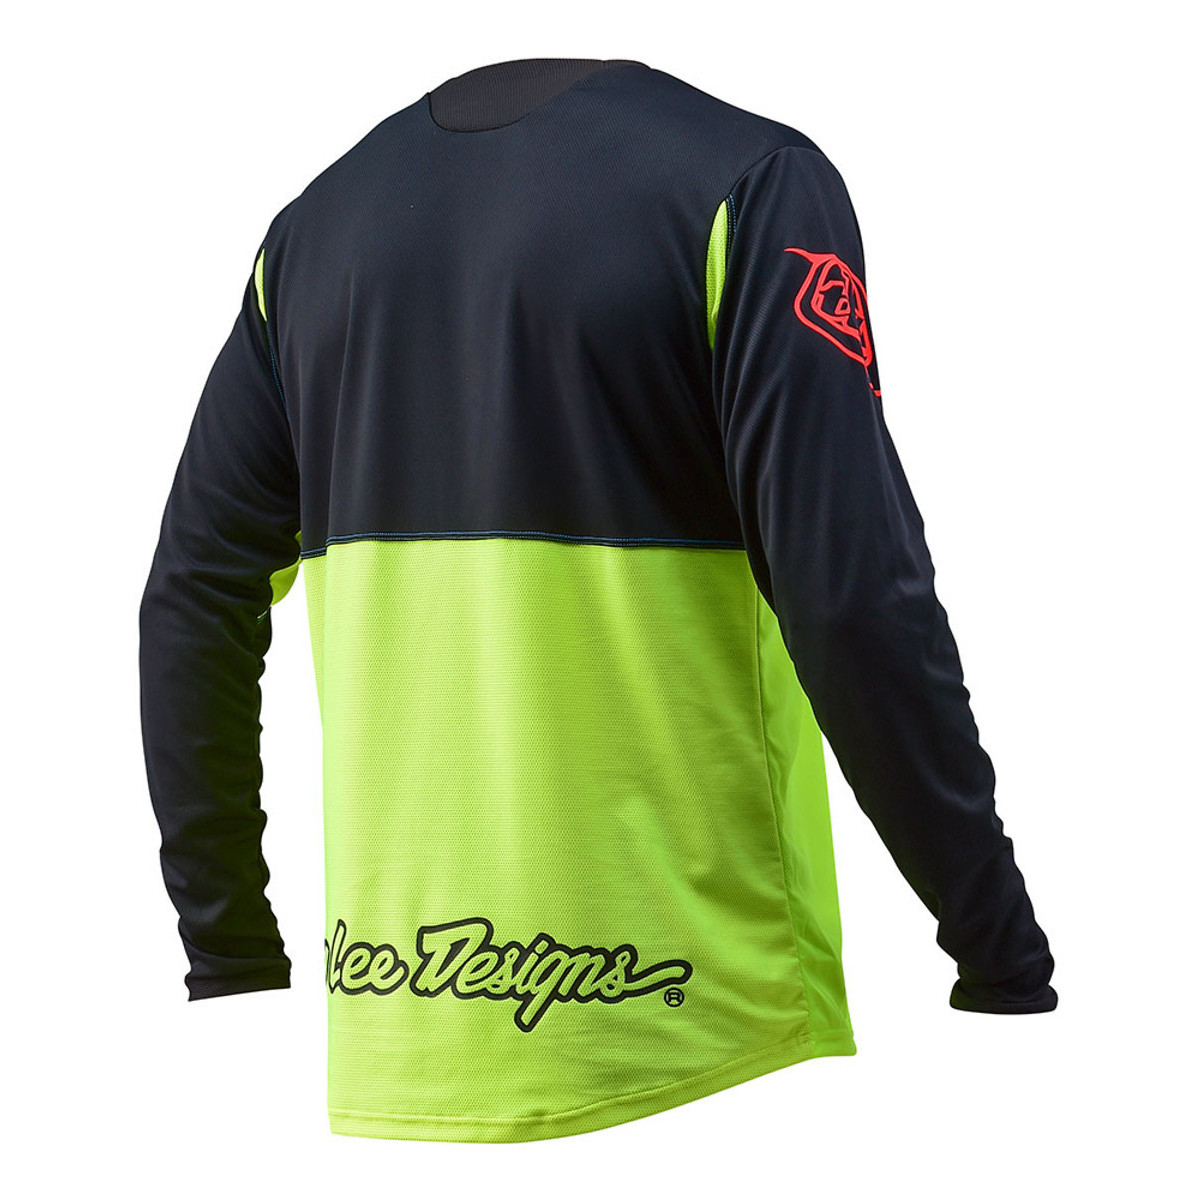 51af93768 Troy Lee Designs Sprint Jersey - Reviews, Comparisons, Specs ...